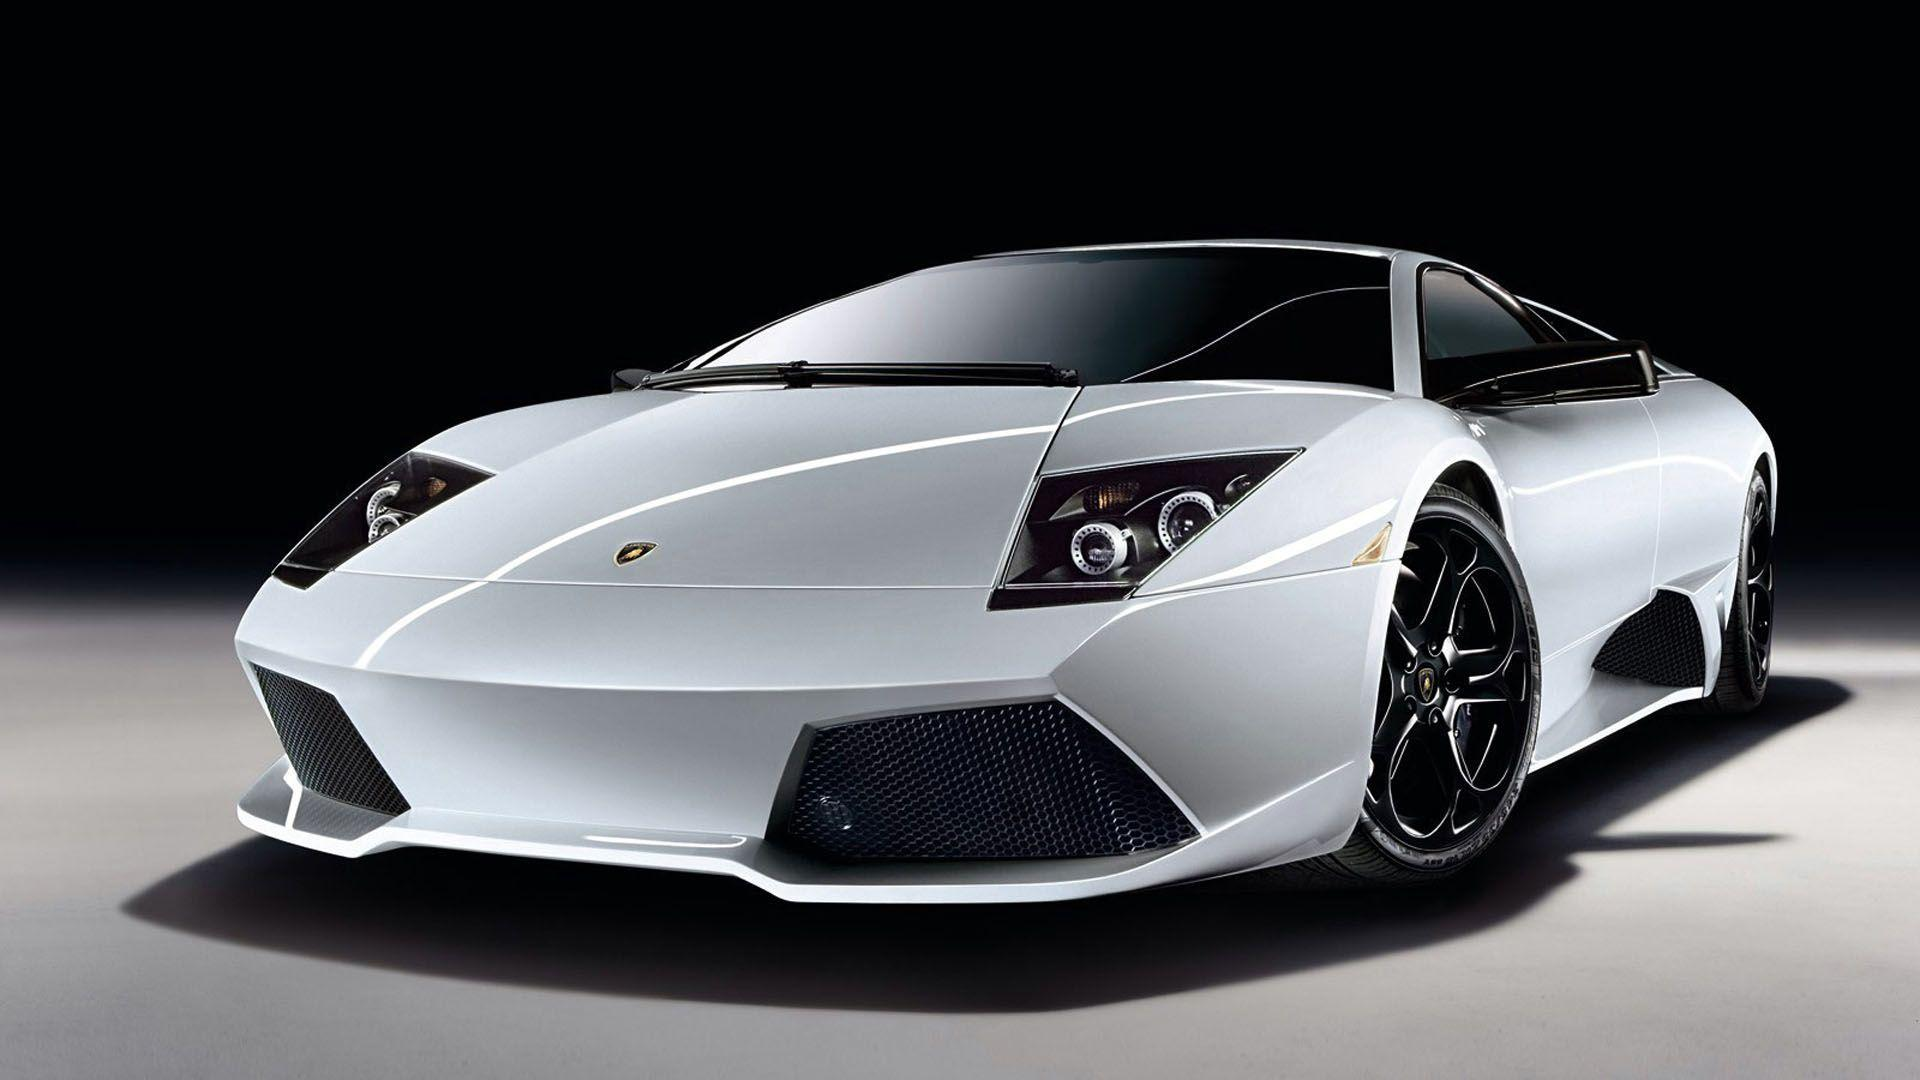 Lamborghini Car Wallpapers 1080p | HD Wallpapers | Desktop Wallpapers